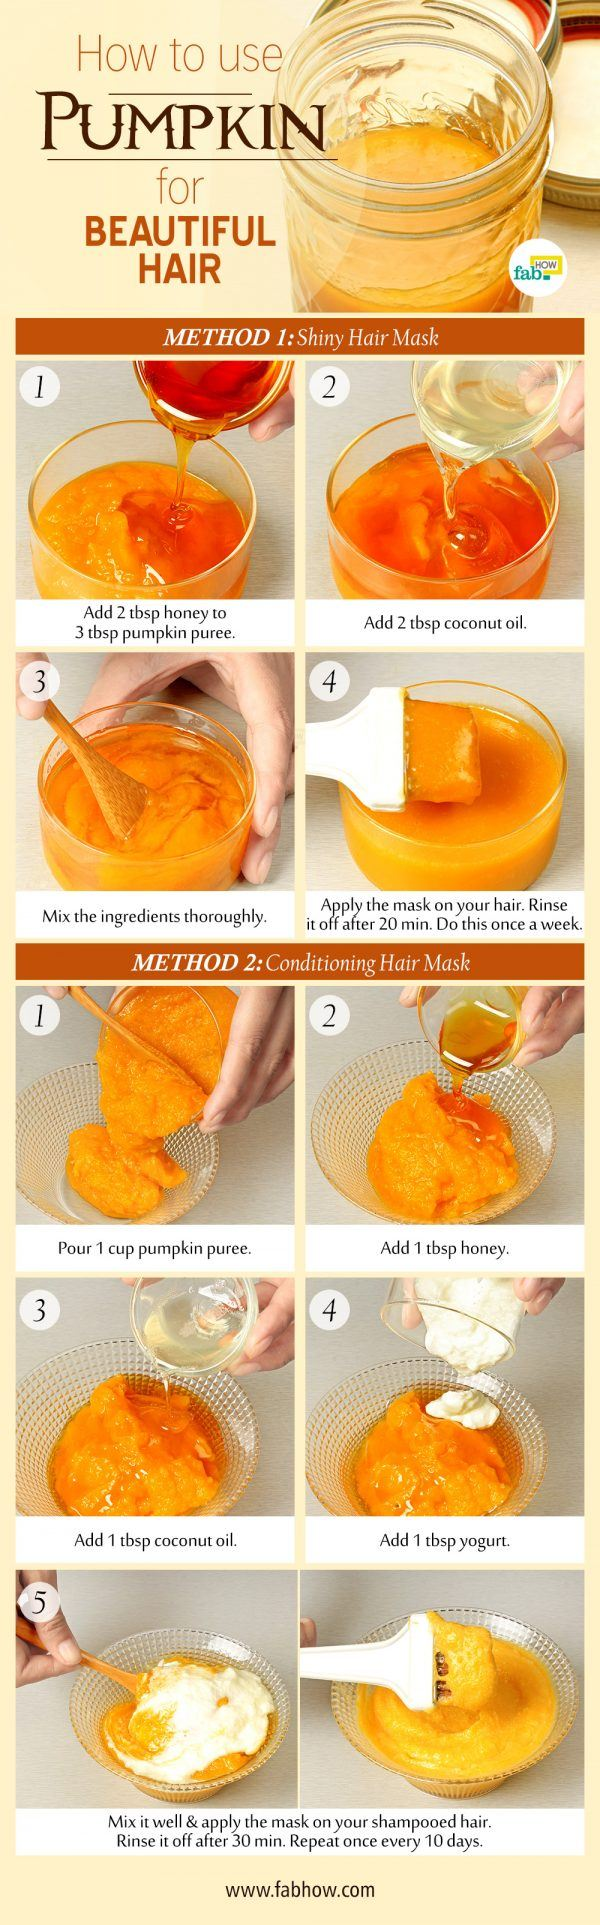 use pumpkin for beautiful hair